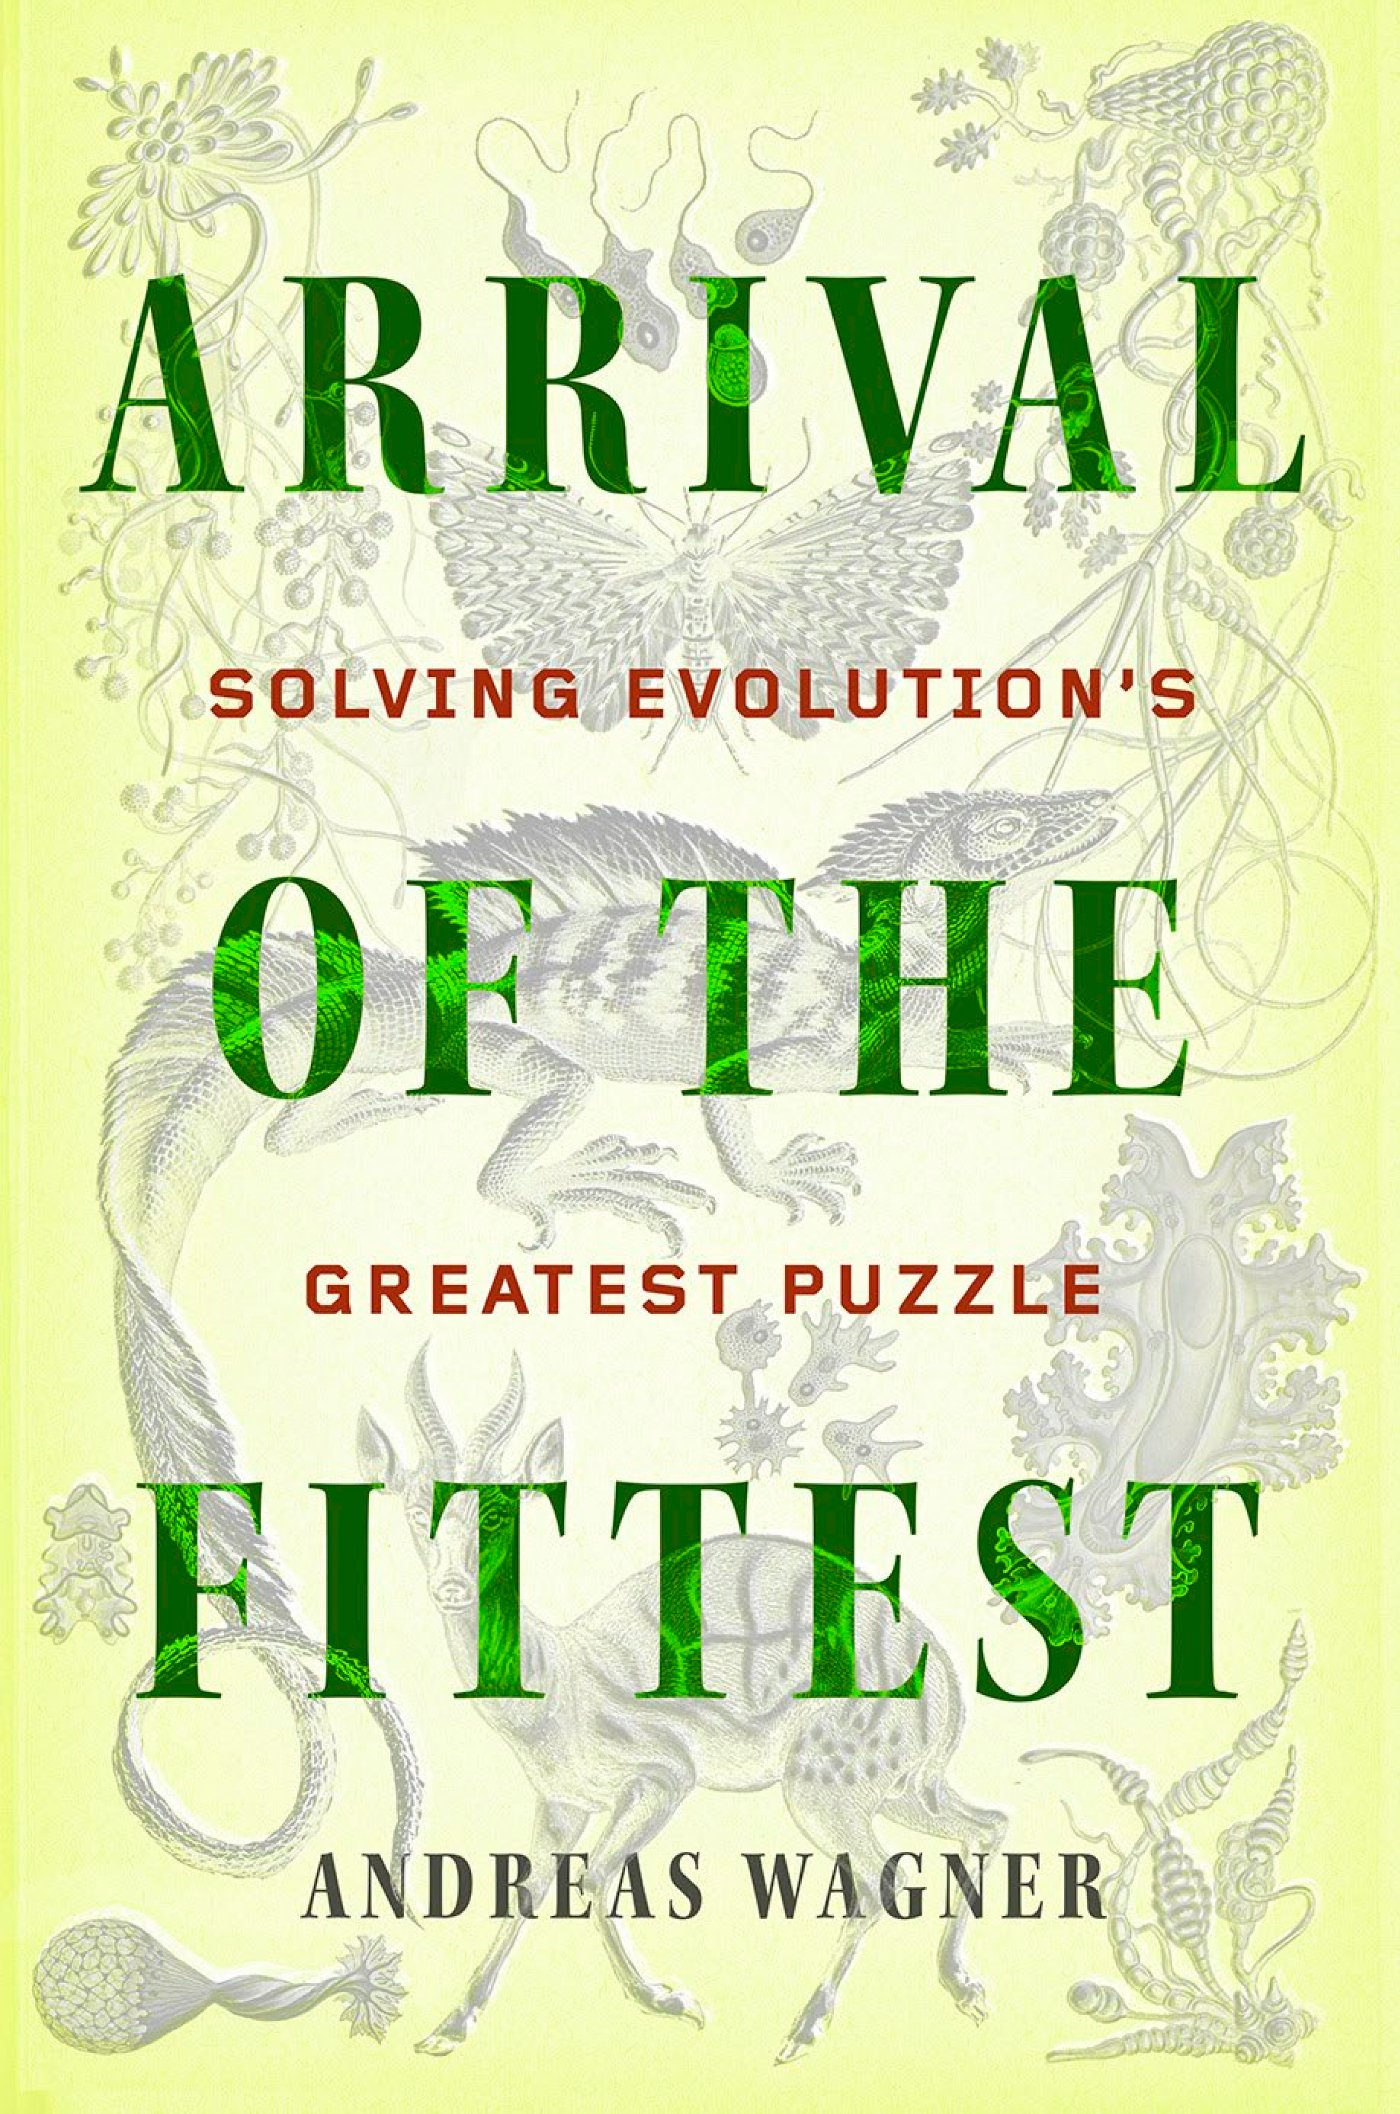 So claims a recent book arrival of the fittest by andreas wagner professor of evolutionary biology at u zurich in switzerland also associated with the